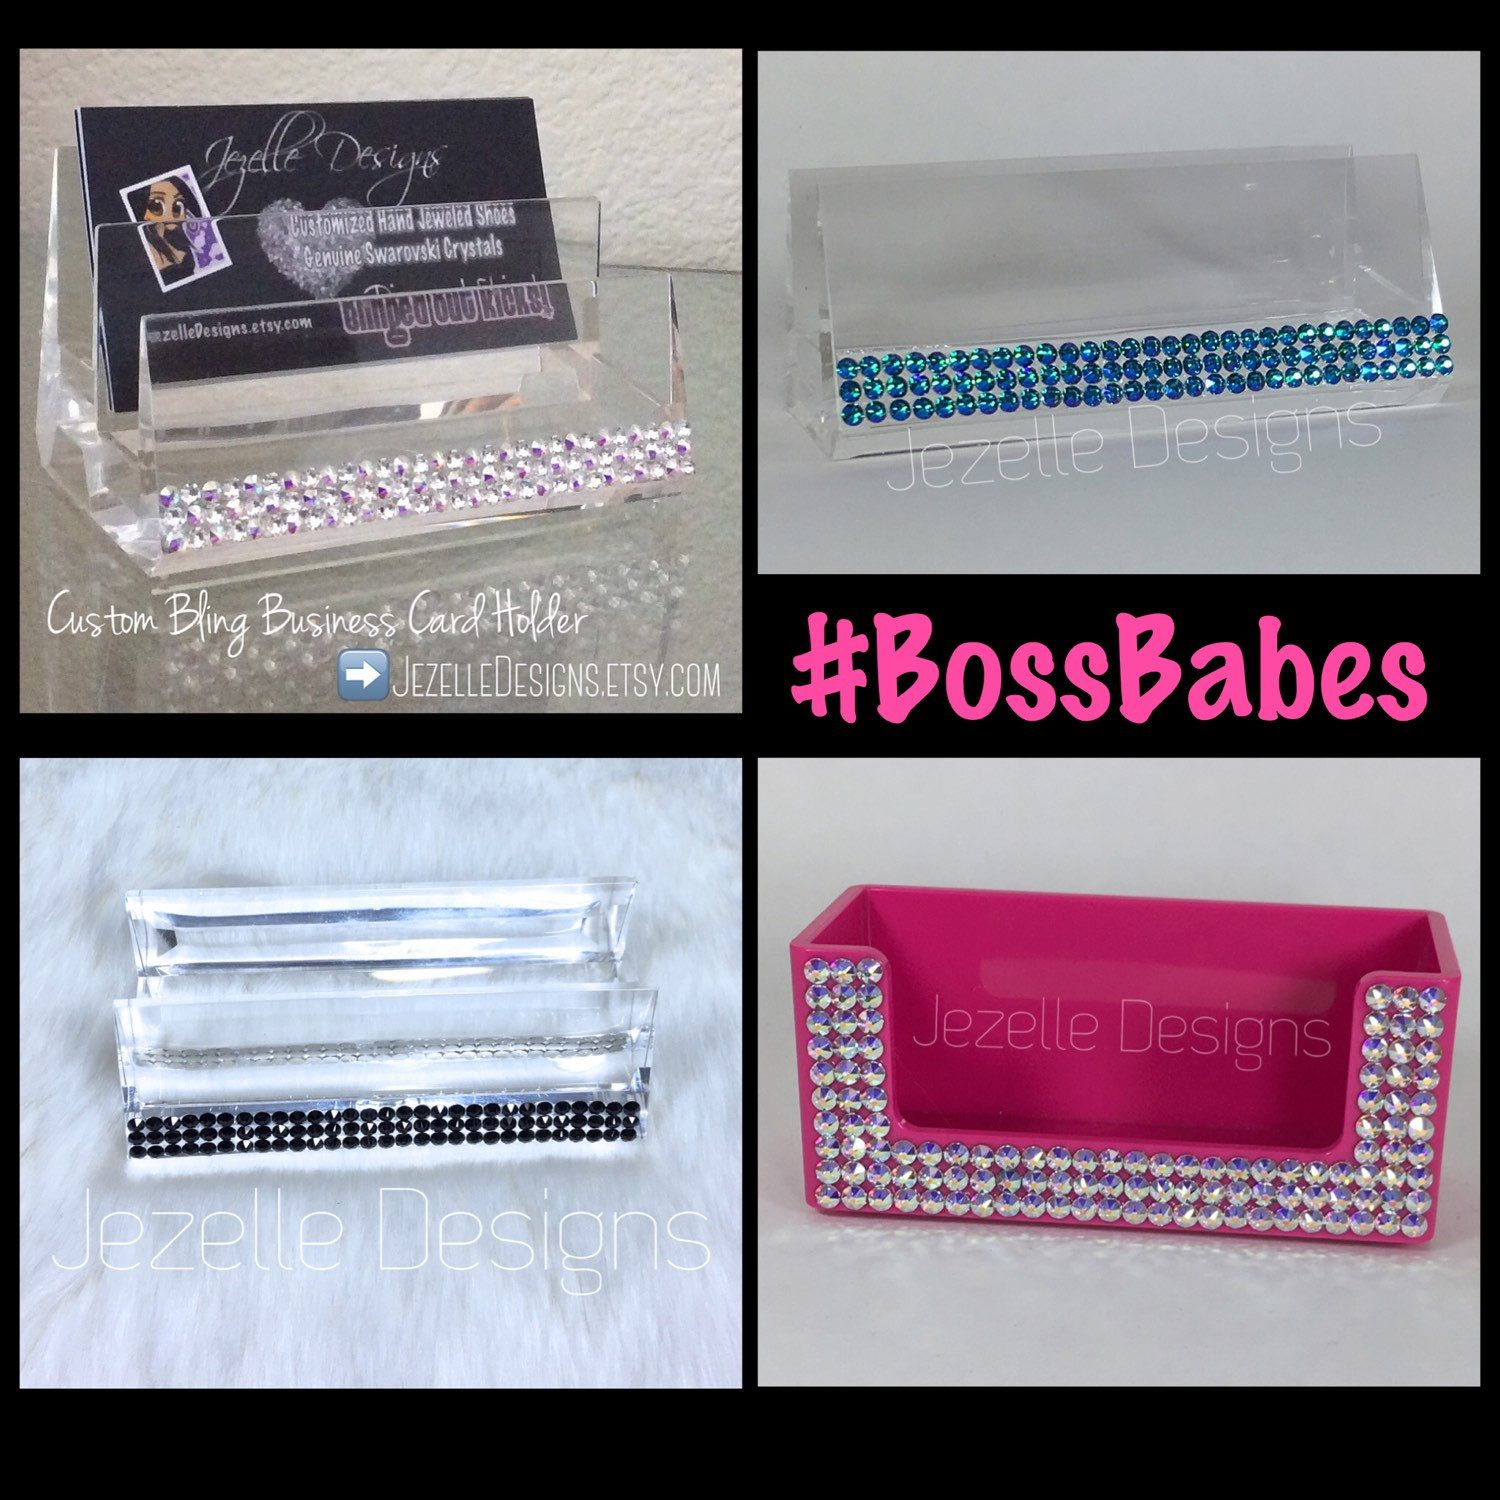 Swarovski business card holder custom hand jeweled acrylic clear swarovski crystal business card holders made just for you by jezelledesignssy bossbabes colourmoves